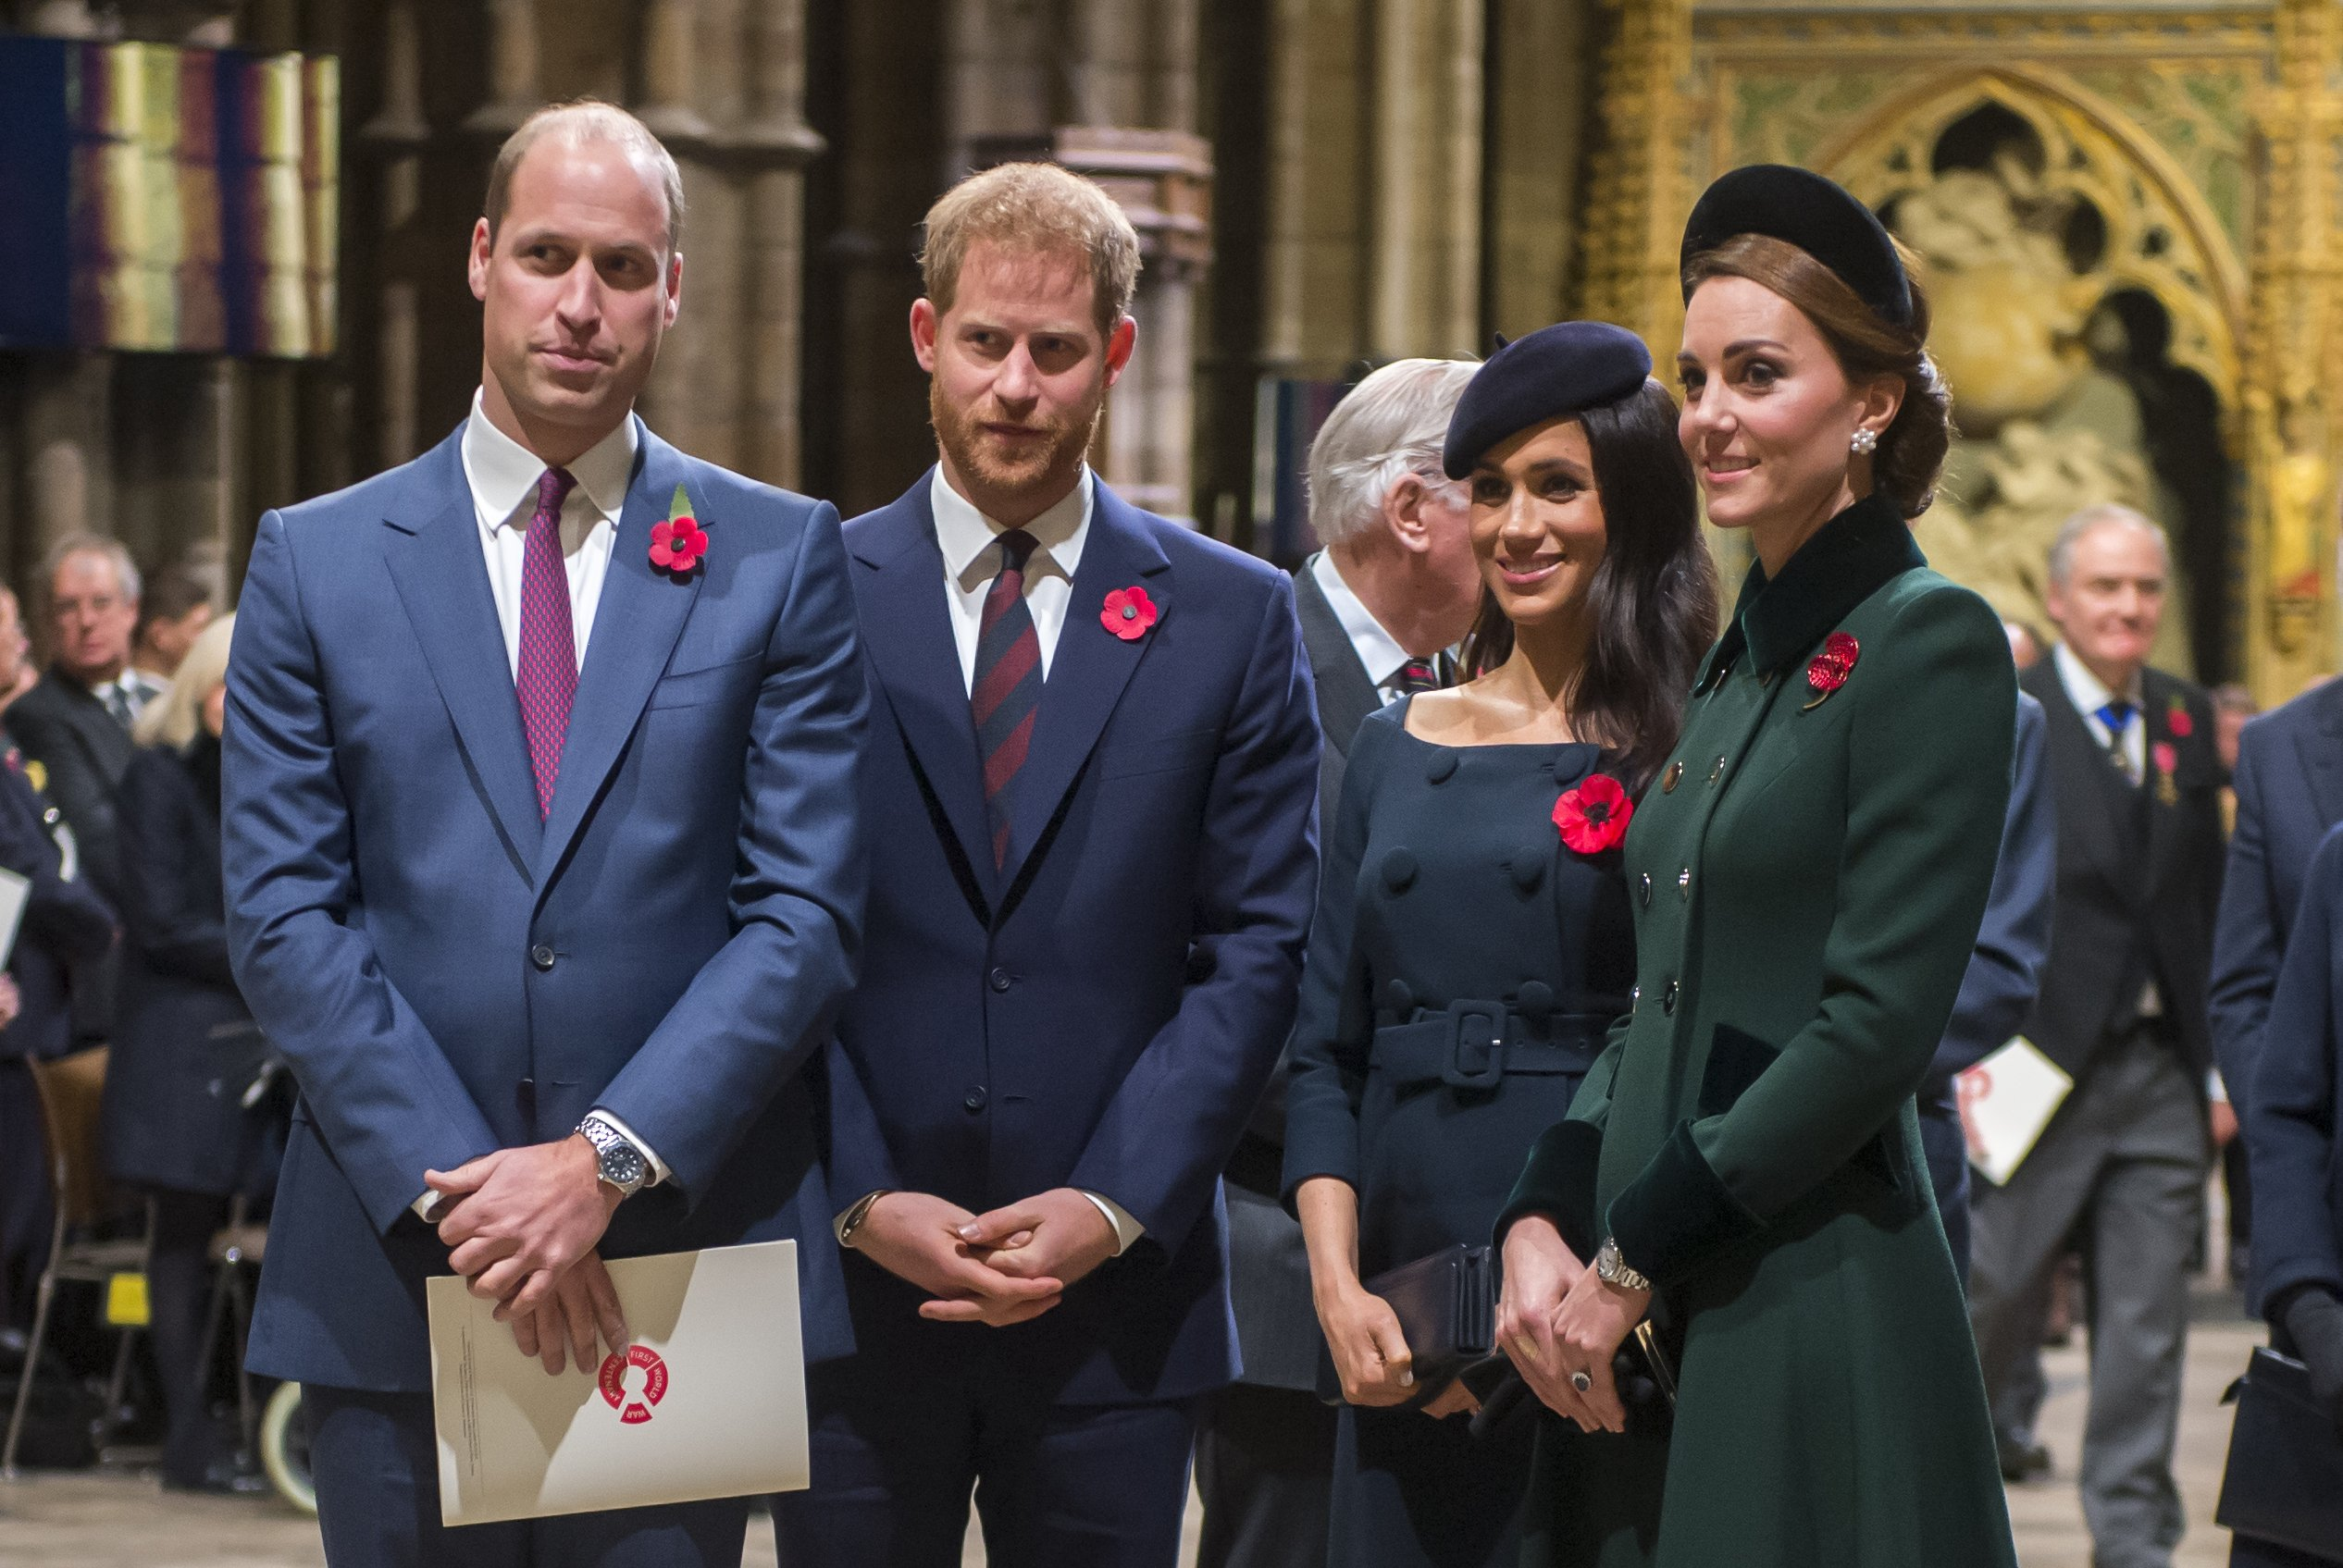 Prince William, Kate Middleton, Prince Harry and Meghan Markle attend a service at Westminster Abbey on November 11, 2018 in London, England | Photo: Getty Images